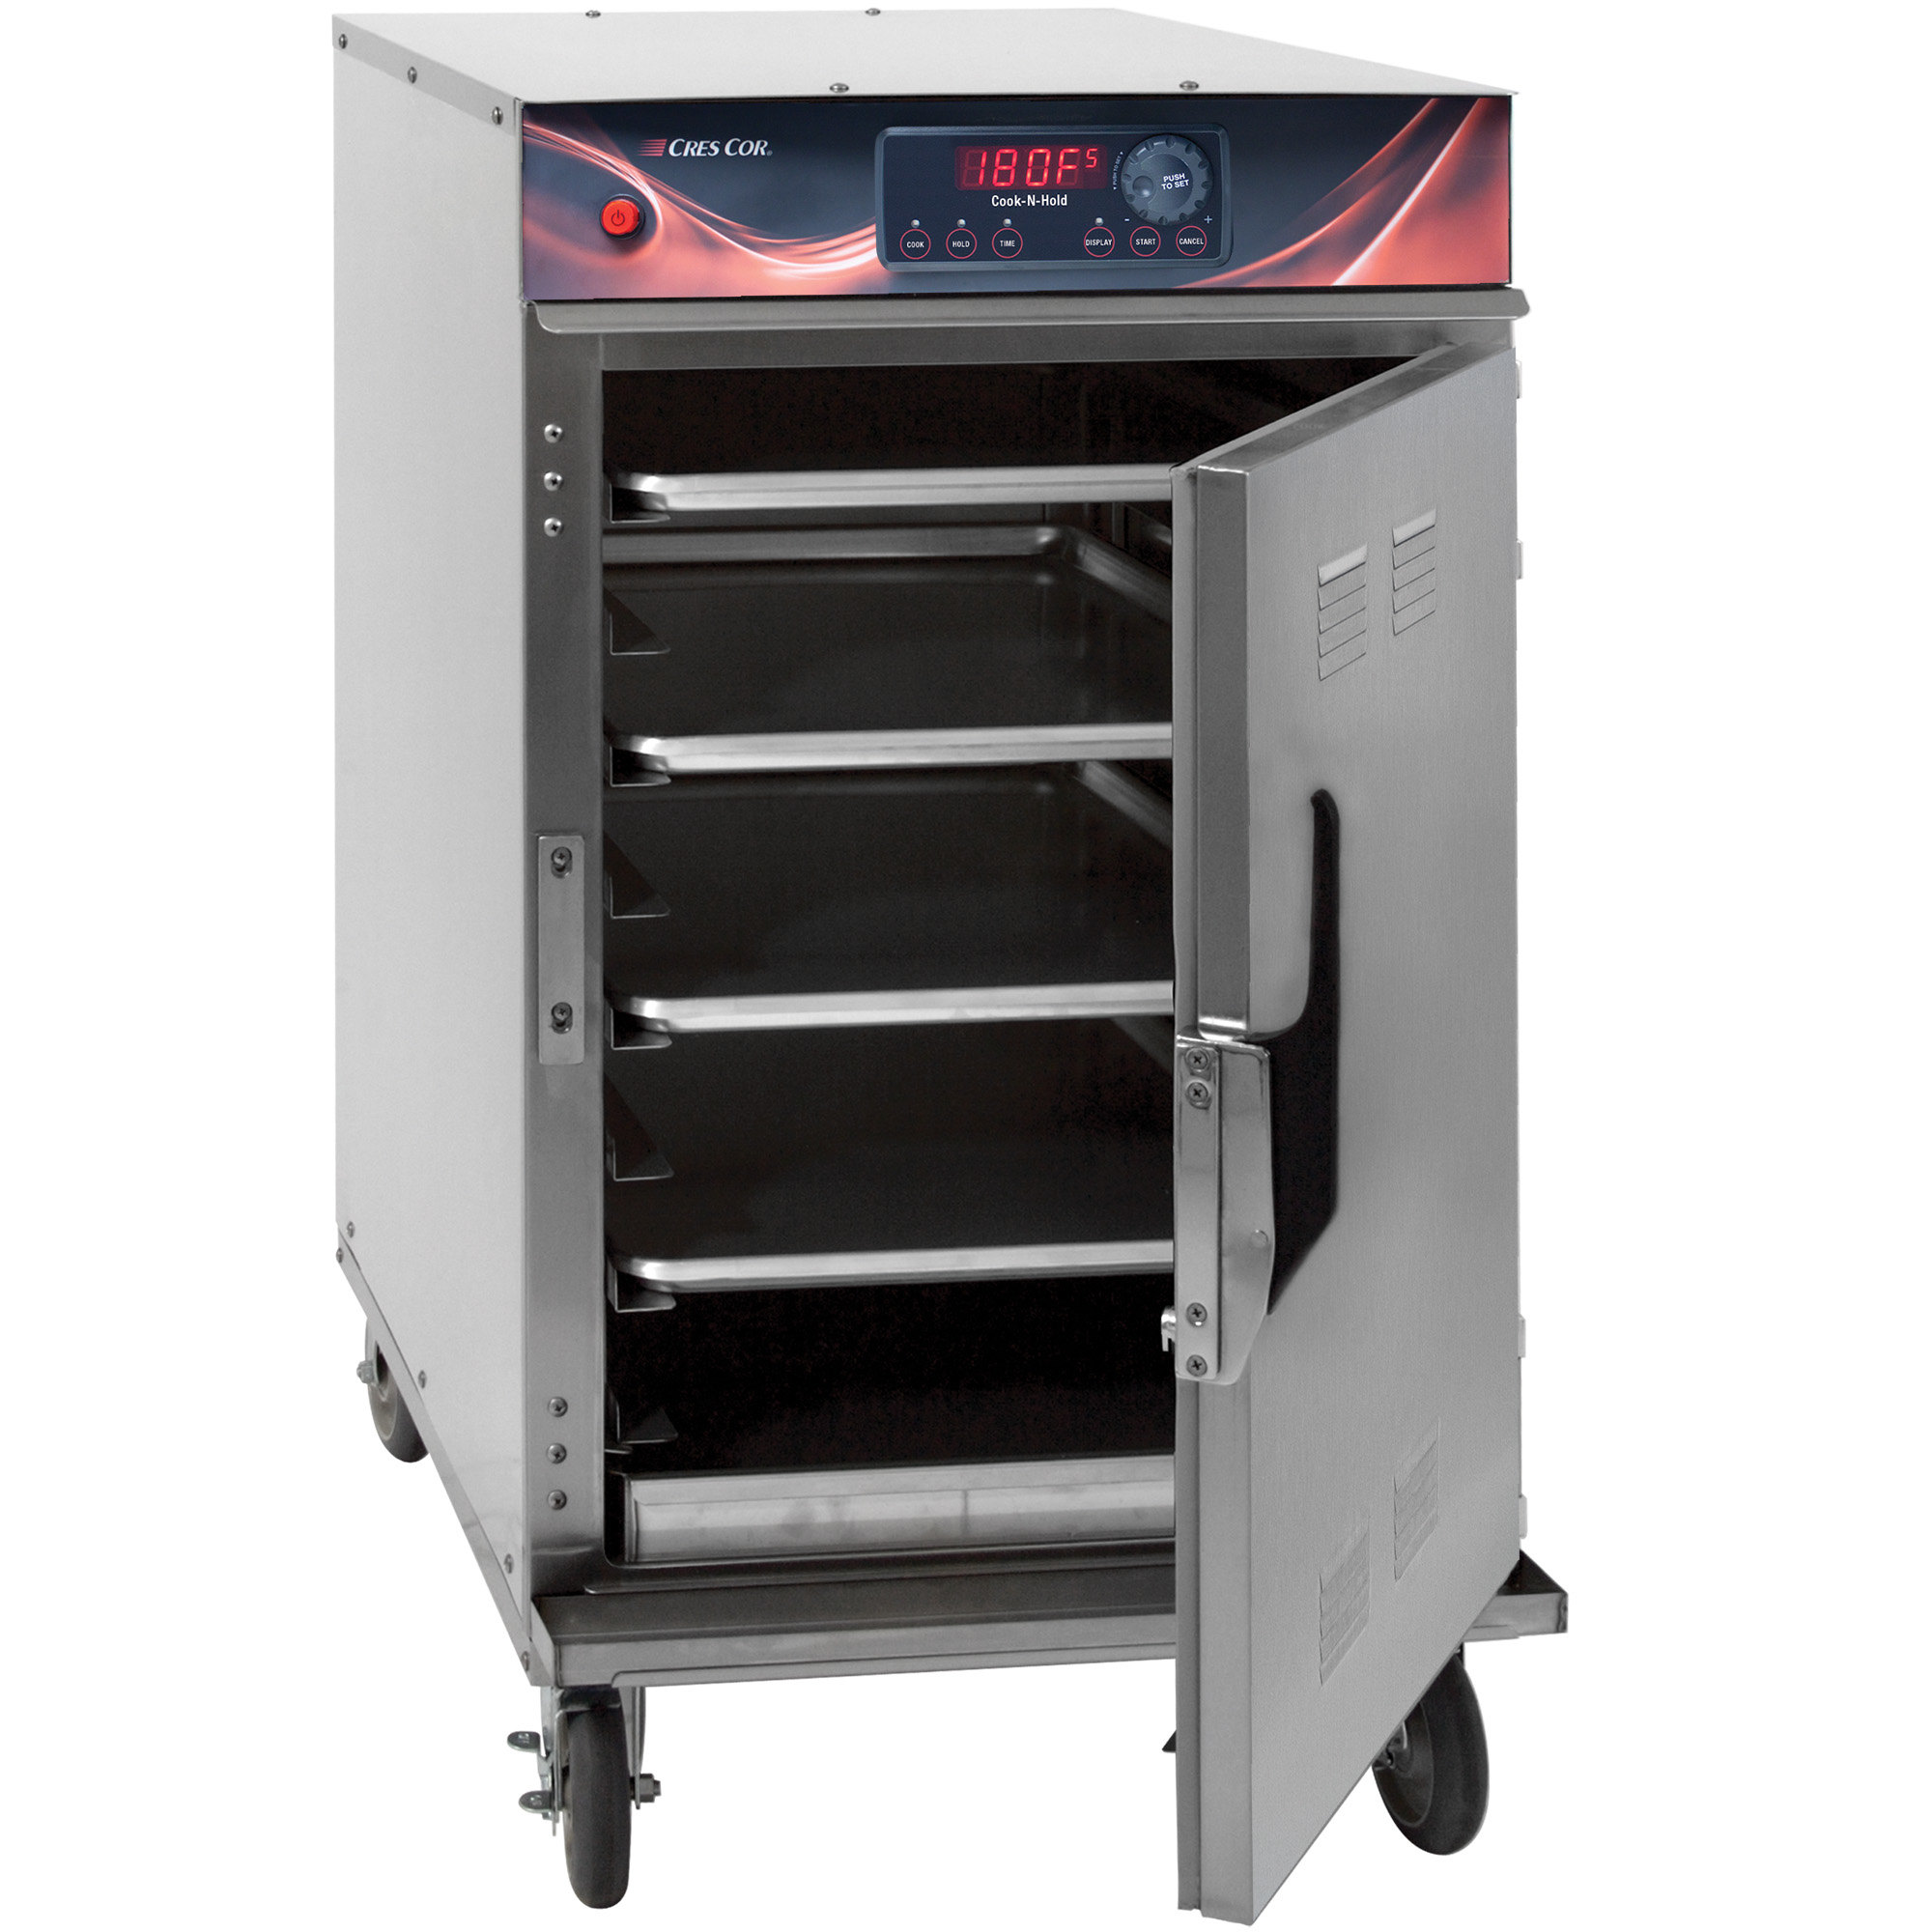 Cres Cor 1000CHSSSPLITDE half height cook and hold oven with door open, showing interior slides